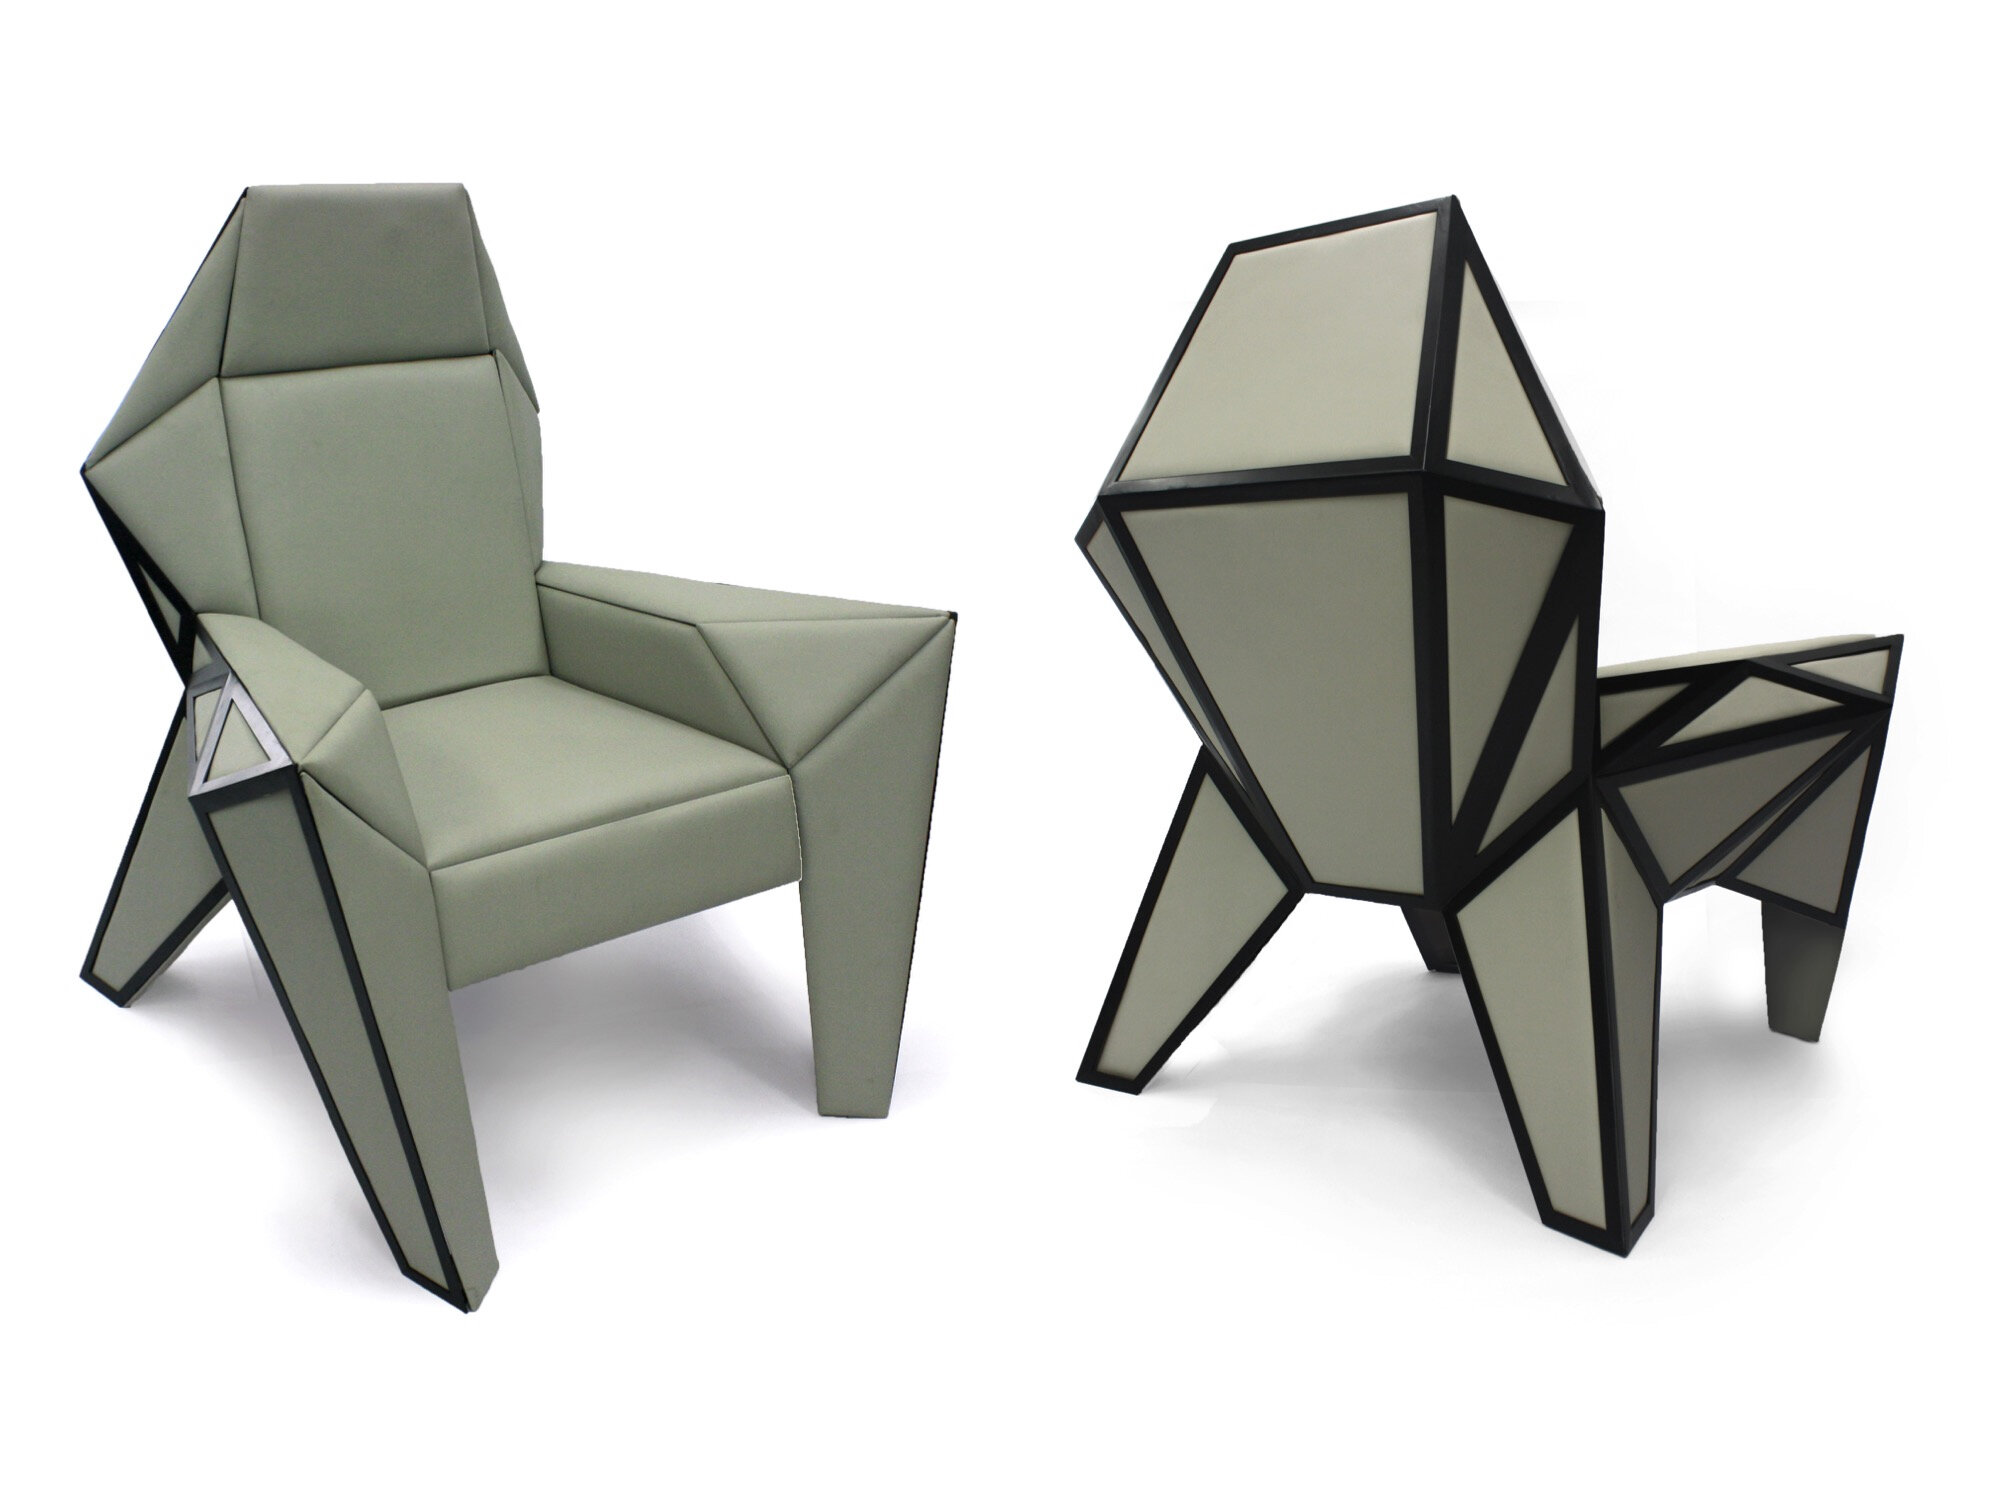 Rocket Chair (front and back)